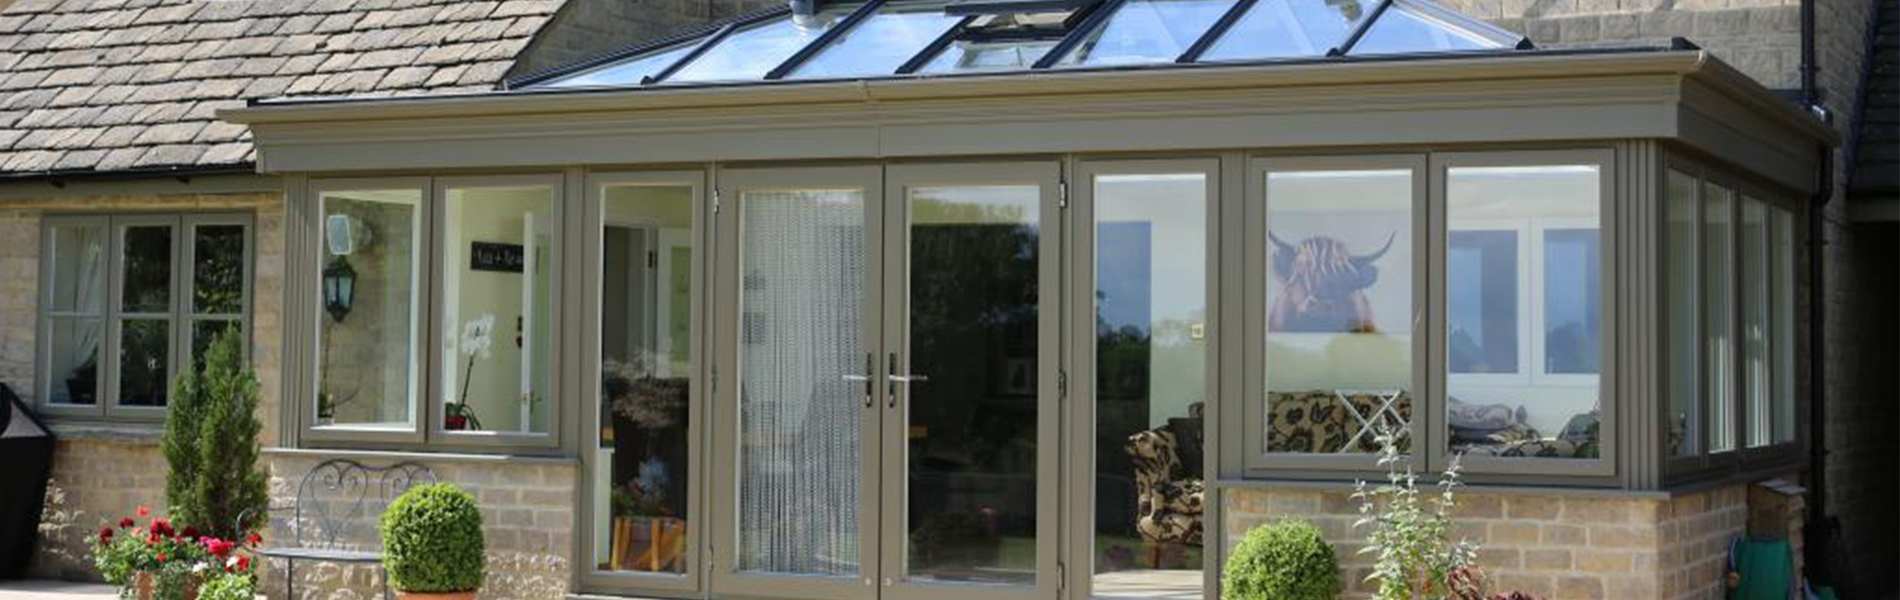 Olivair Home Improvements | Conservatories